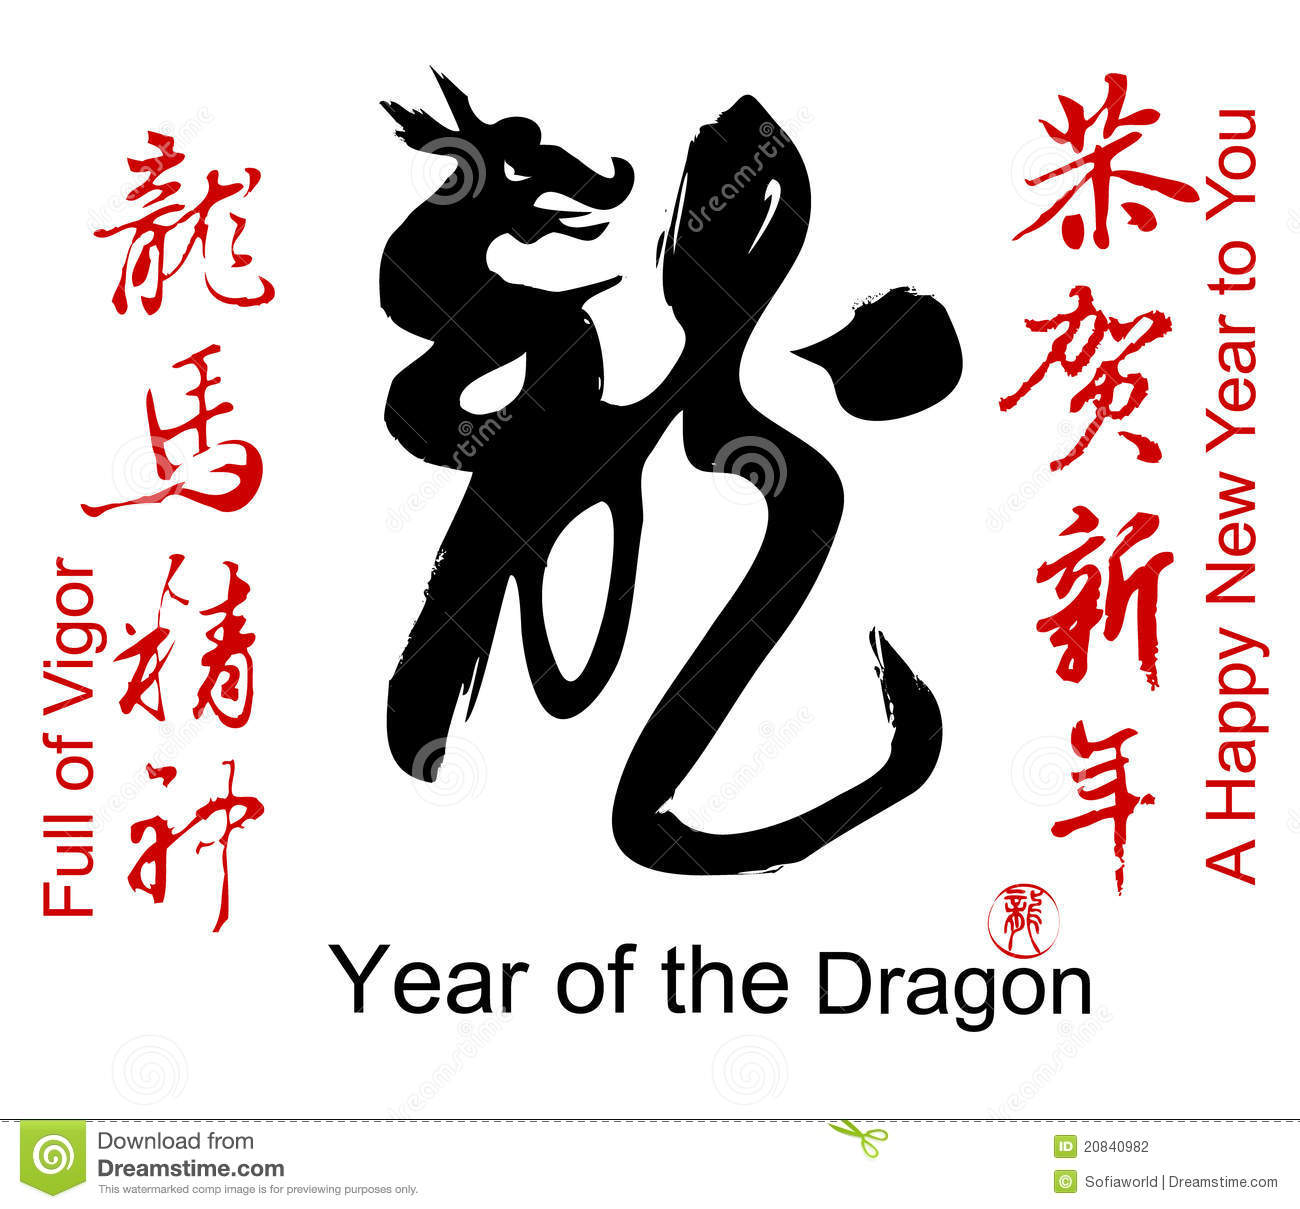 Collection of Chinese Spring Festival Words